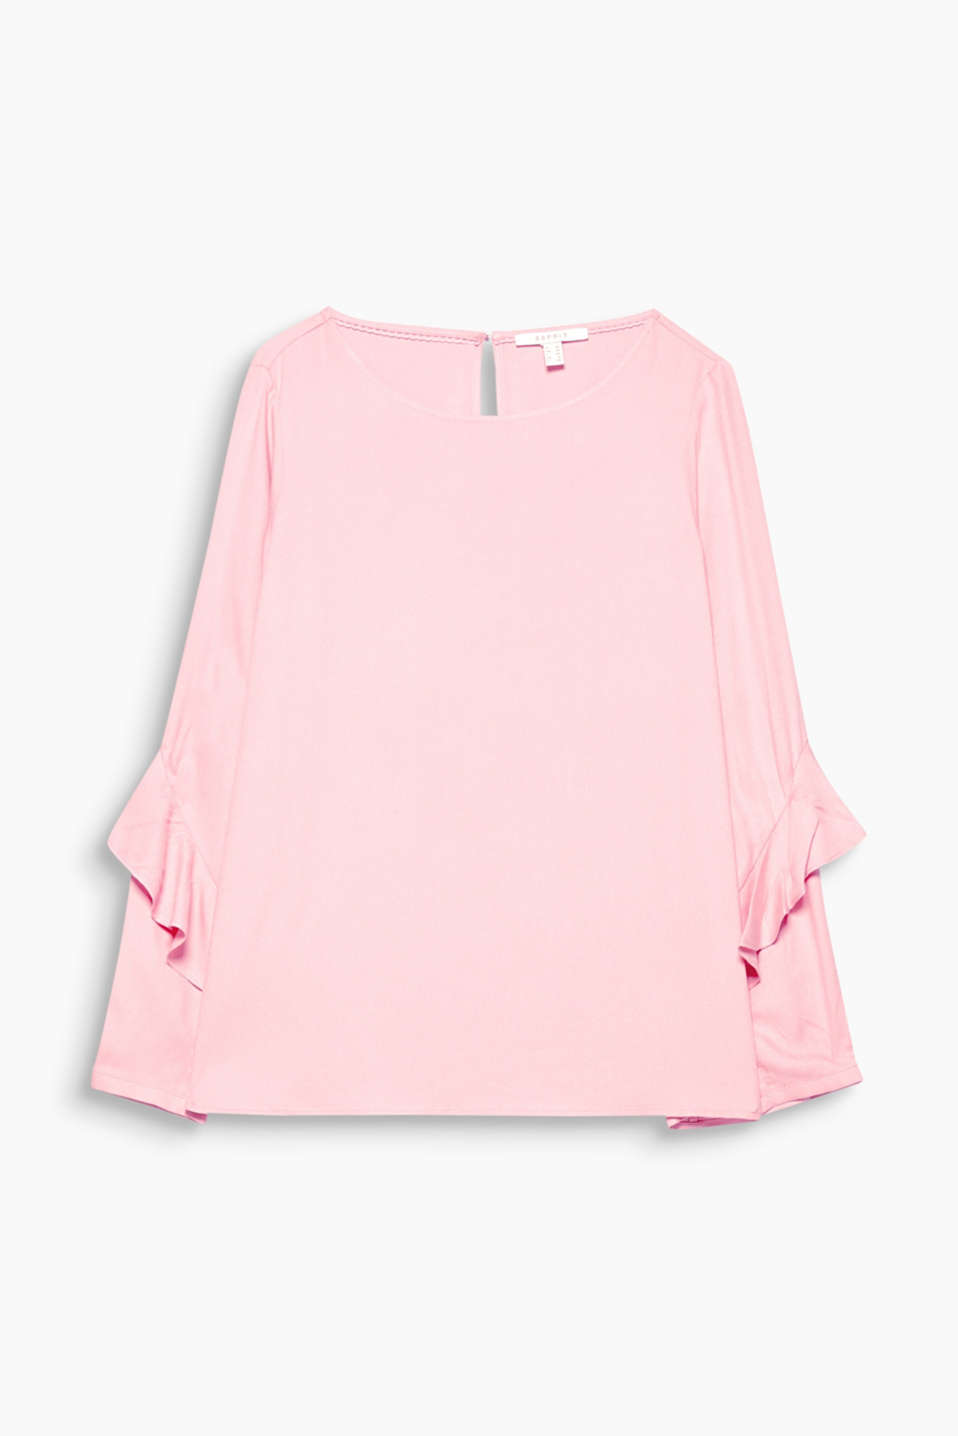 This blouse with a casual cut and elaborate frills on the long sleeves is a feminine and flowing fashion star!